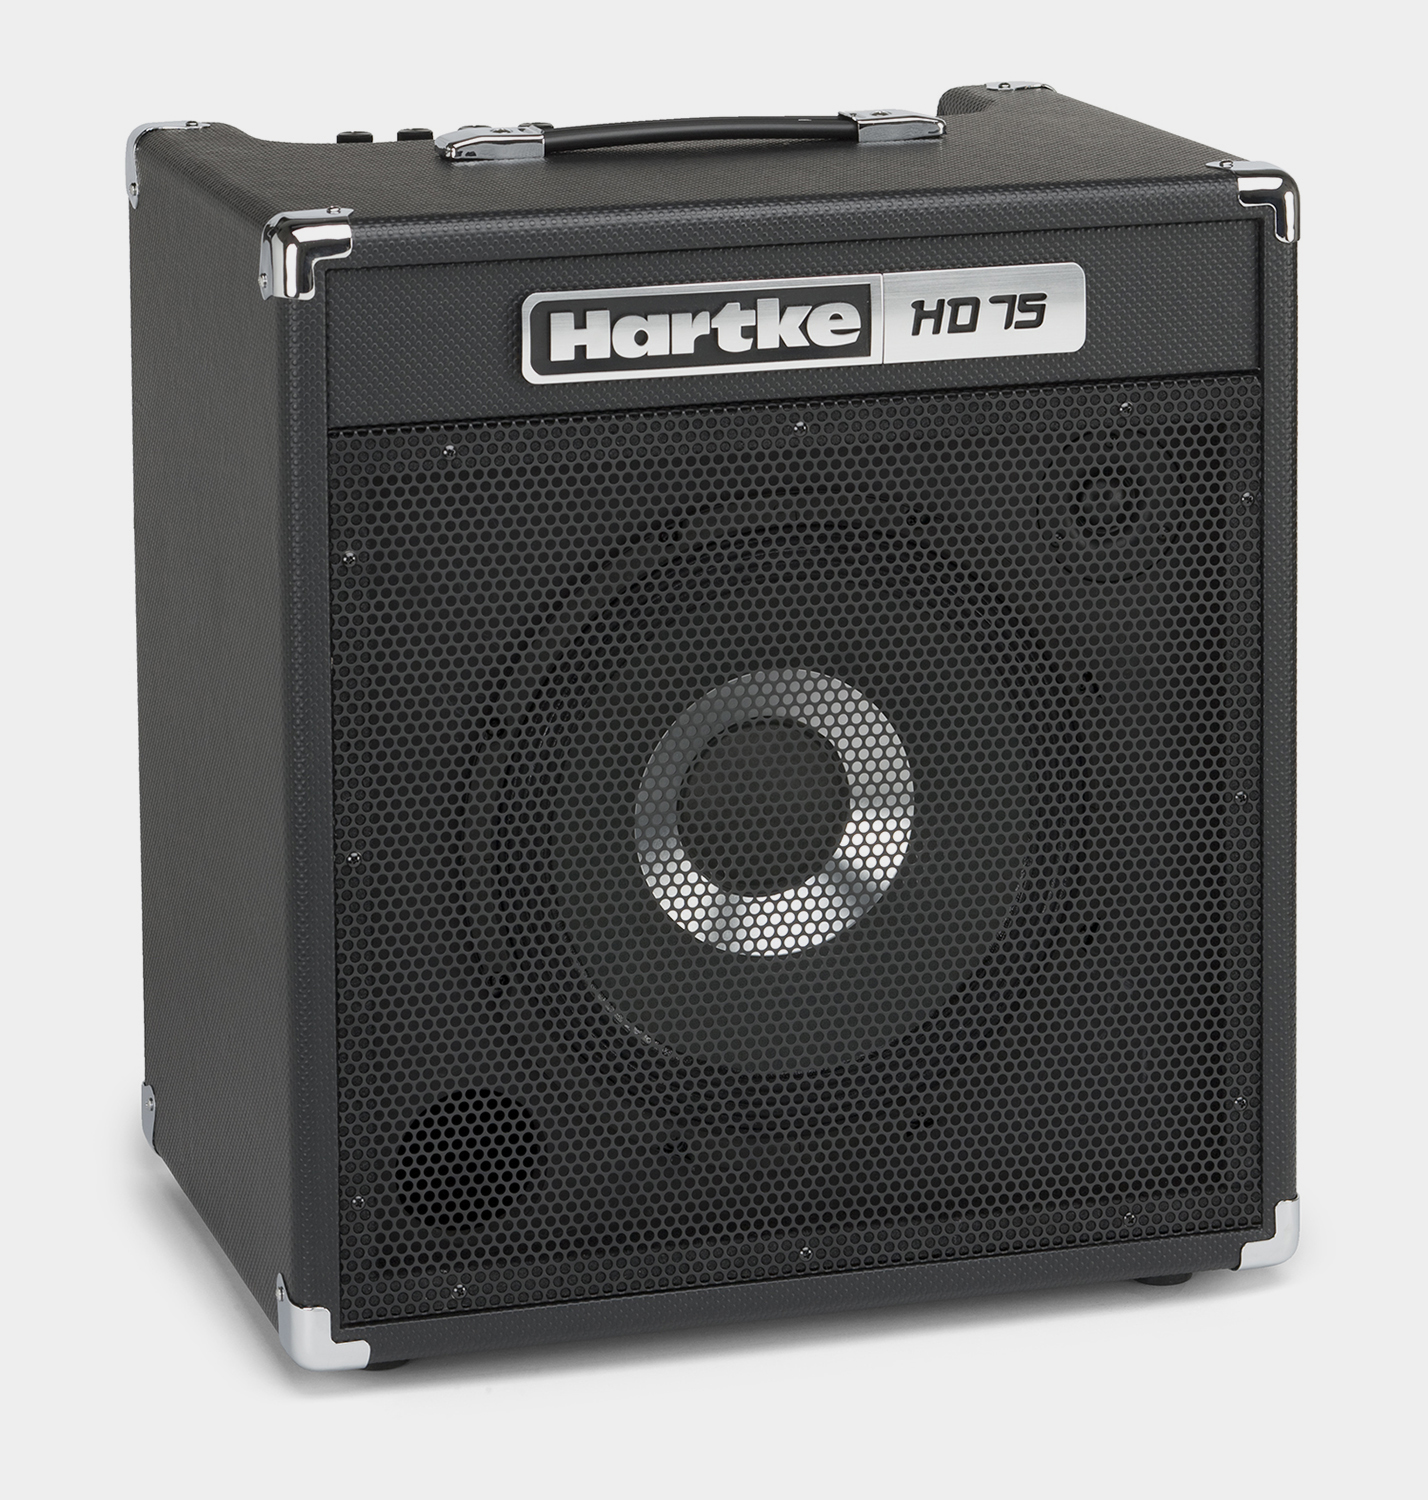 HARTKE HD 75 Combo Front